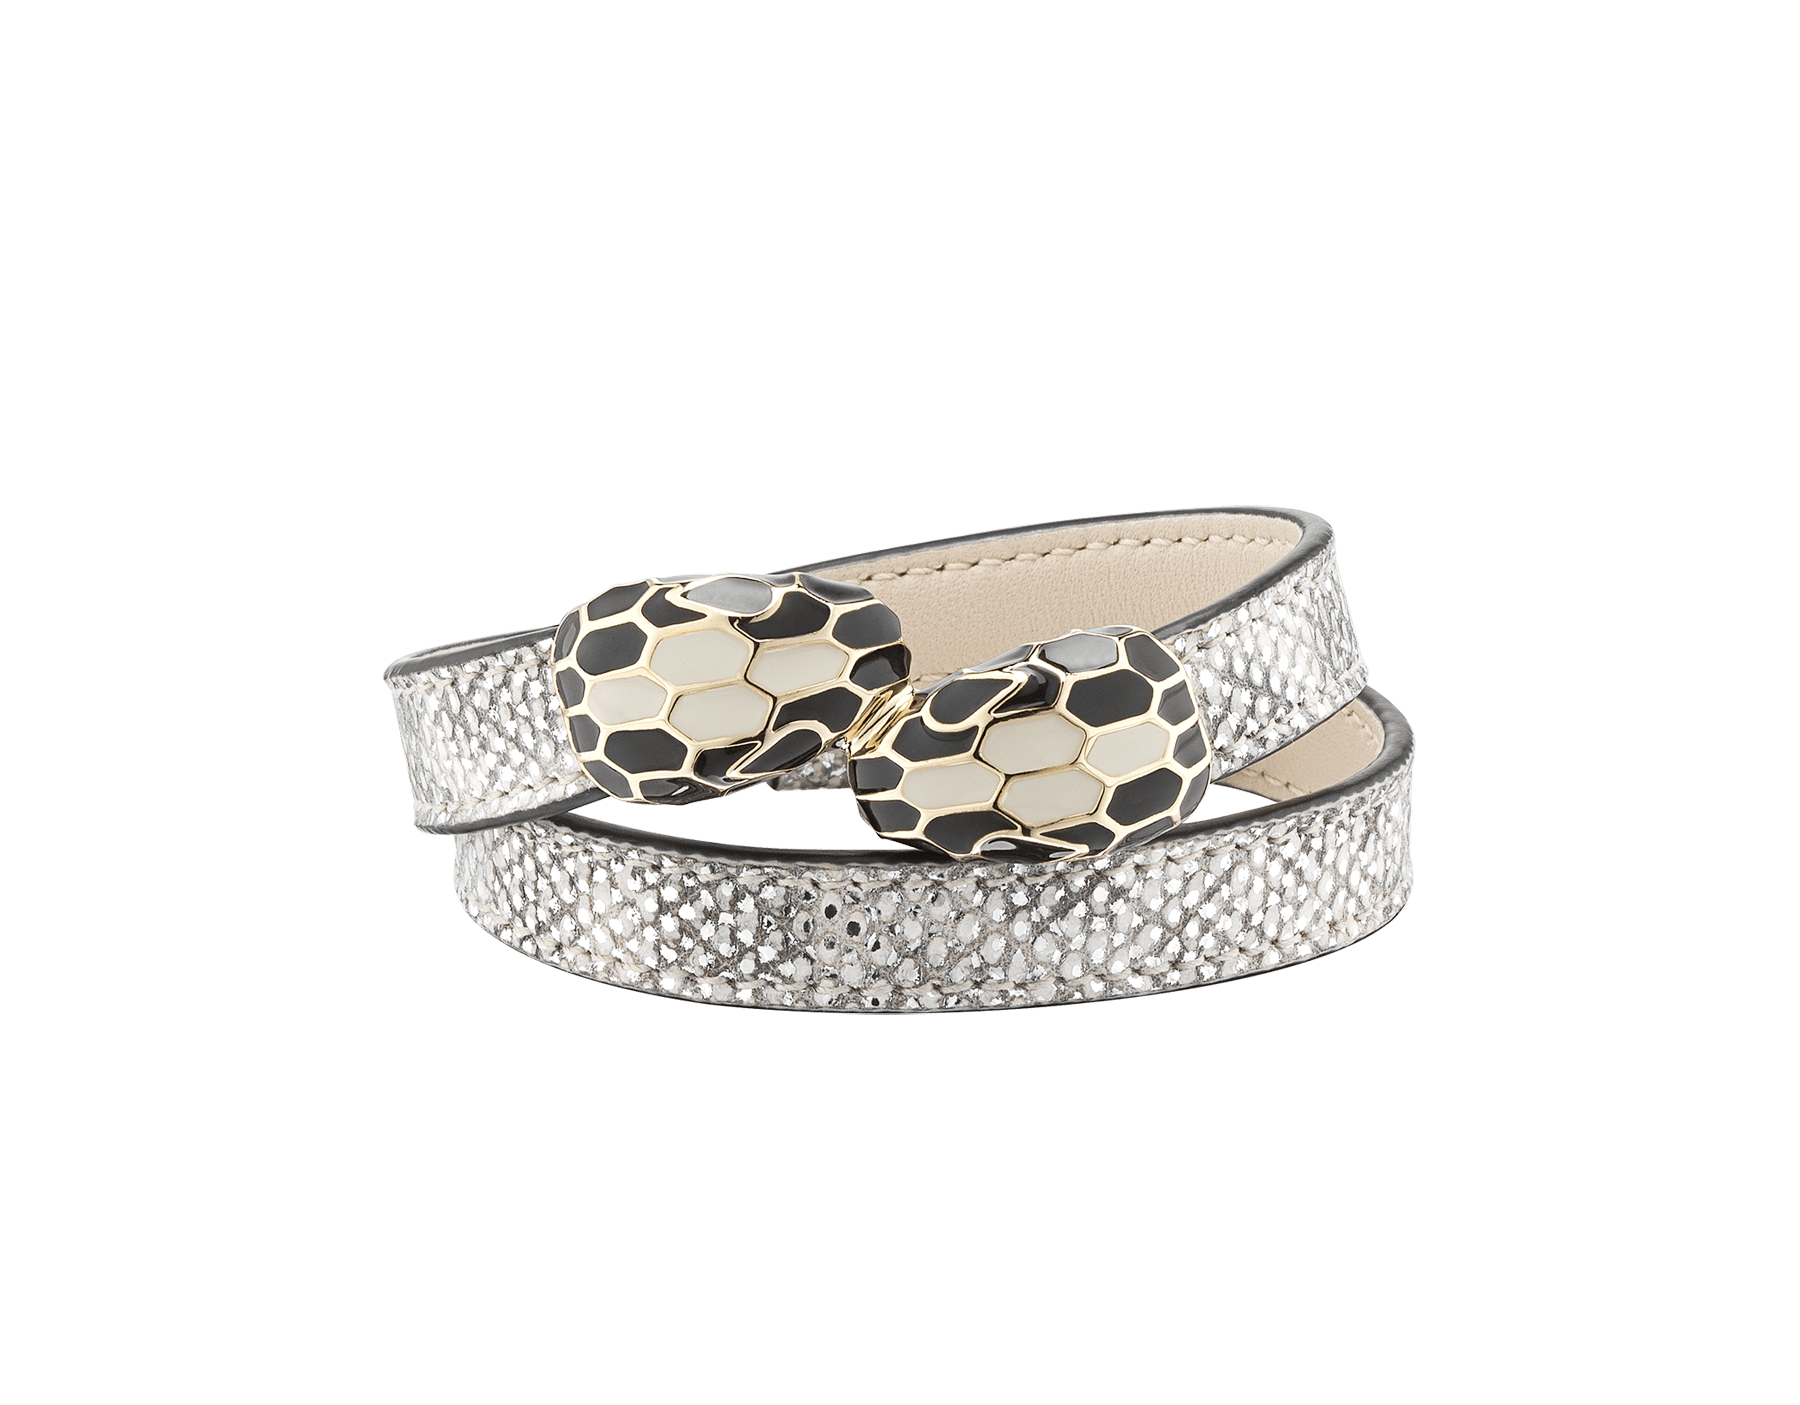 Serpenti Forever multi-coiled bracelet in white agate metallic karung skin, with brass light gold plated hardware. Iconic contraire snakehead décor in black and white agate enamel, with black enamel eyes. MCSerp-MK-WA image 1